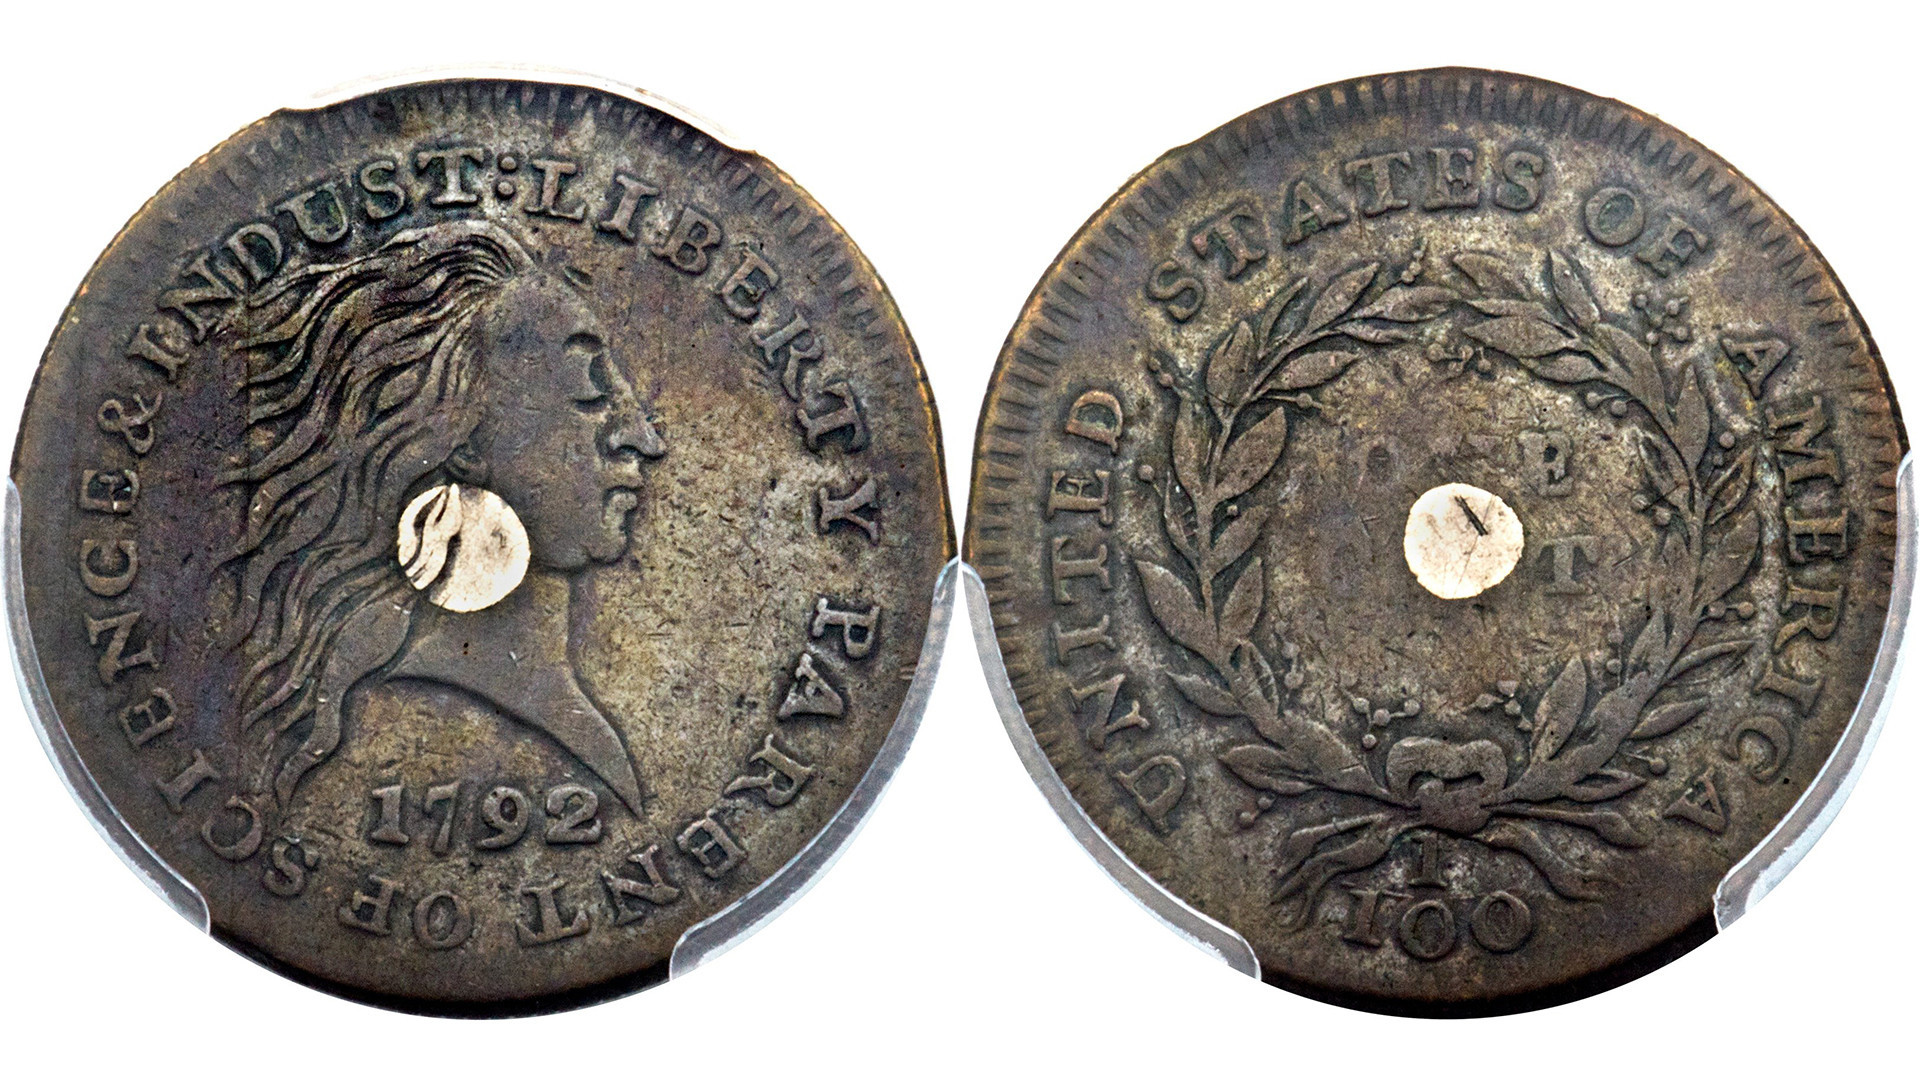 2 early U.S. 1-cent coins sell for combined $869,500 ...